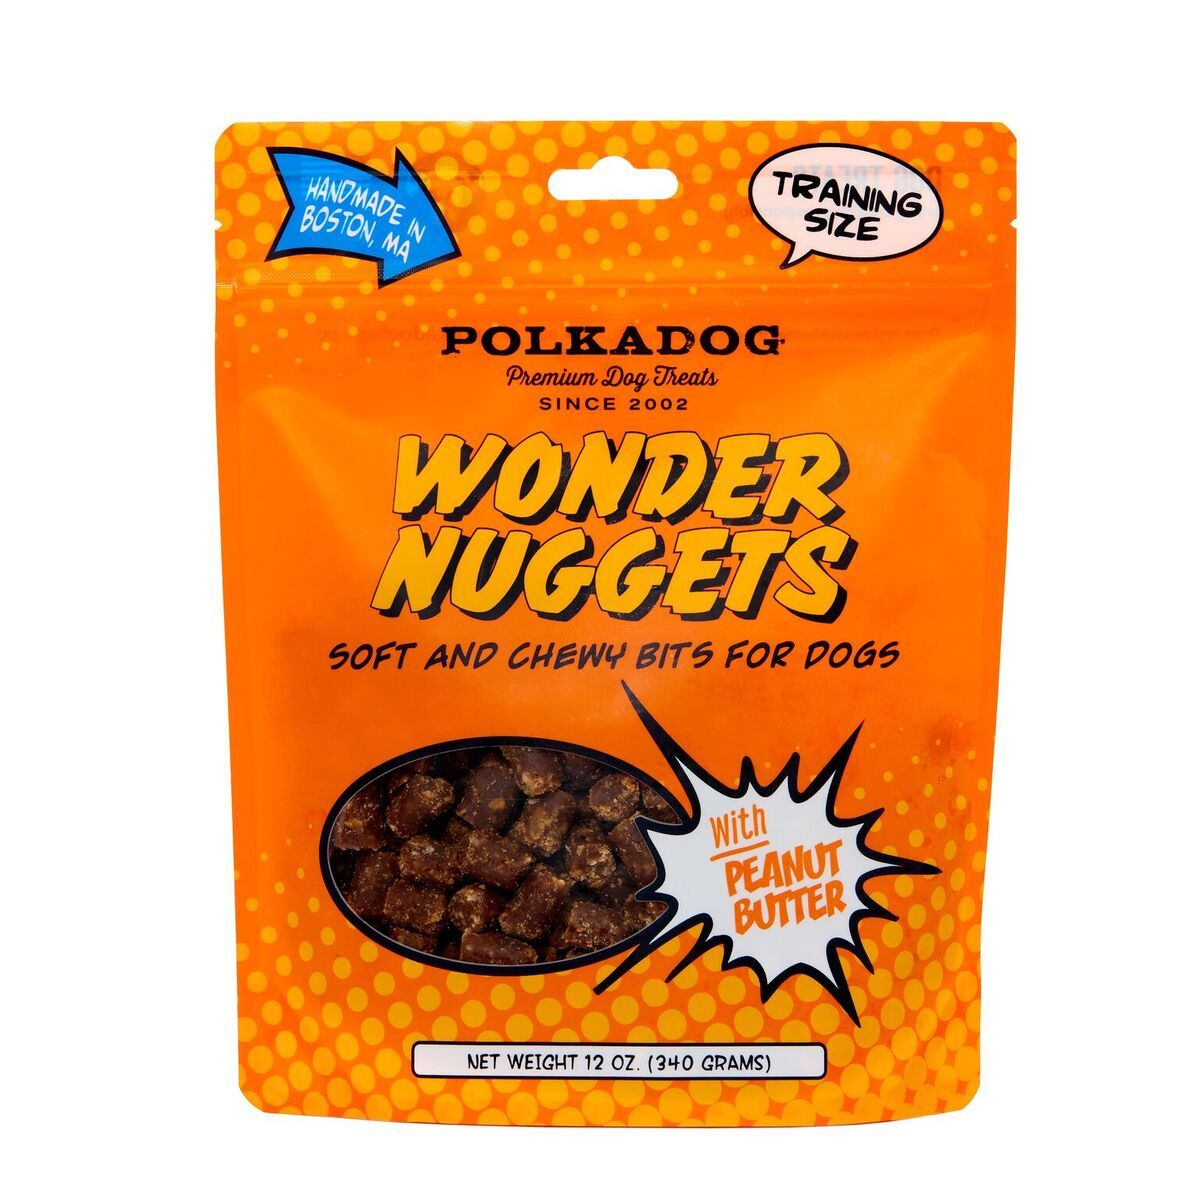 Polka Dog Bakery Wonder Nuggets – Peanut Butter Dog Treats